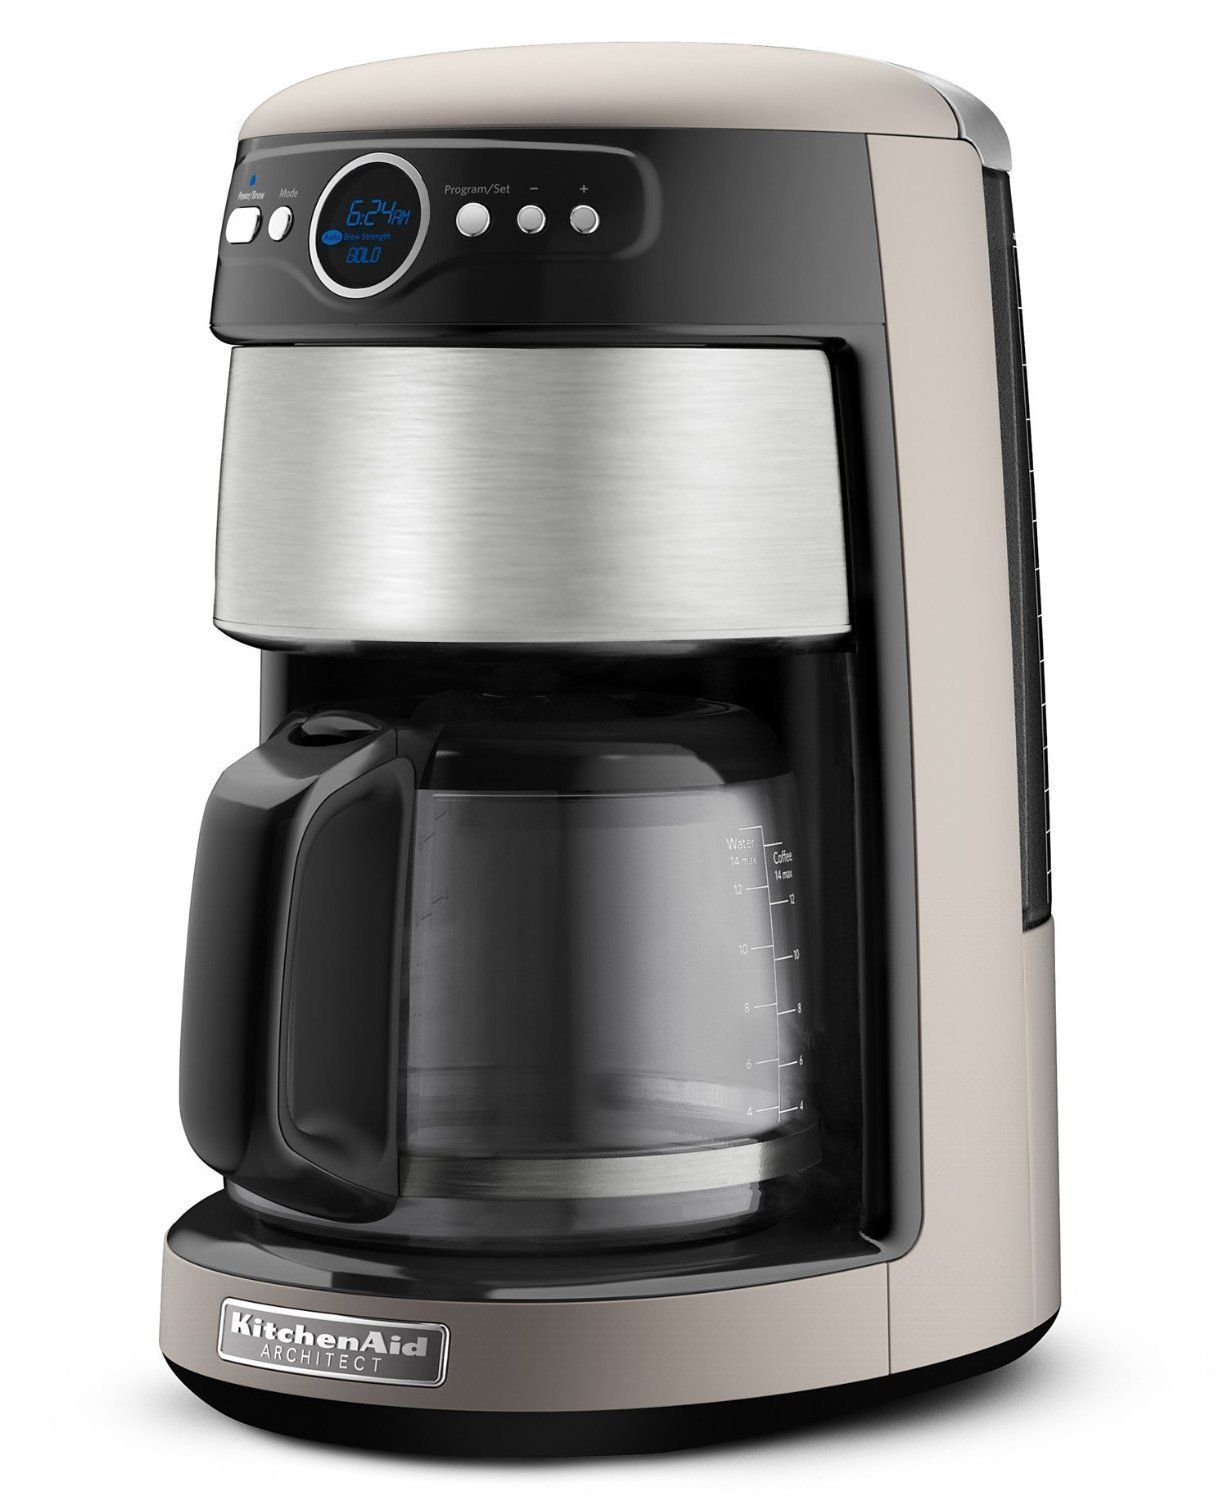 Kitchenaid kcm222cs silver and stainless steel front